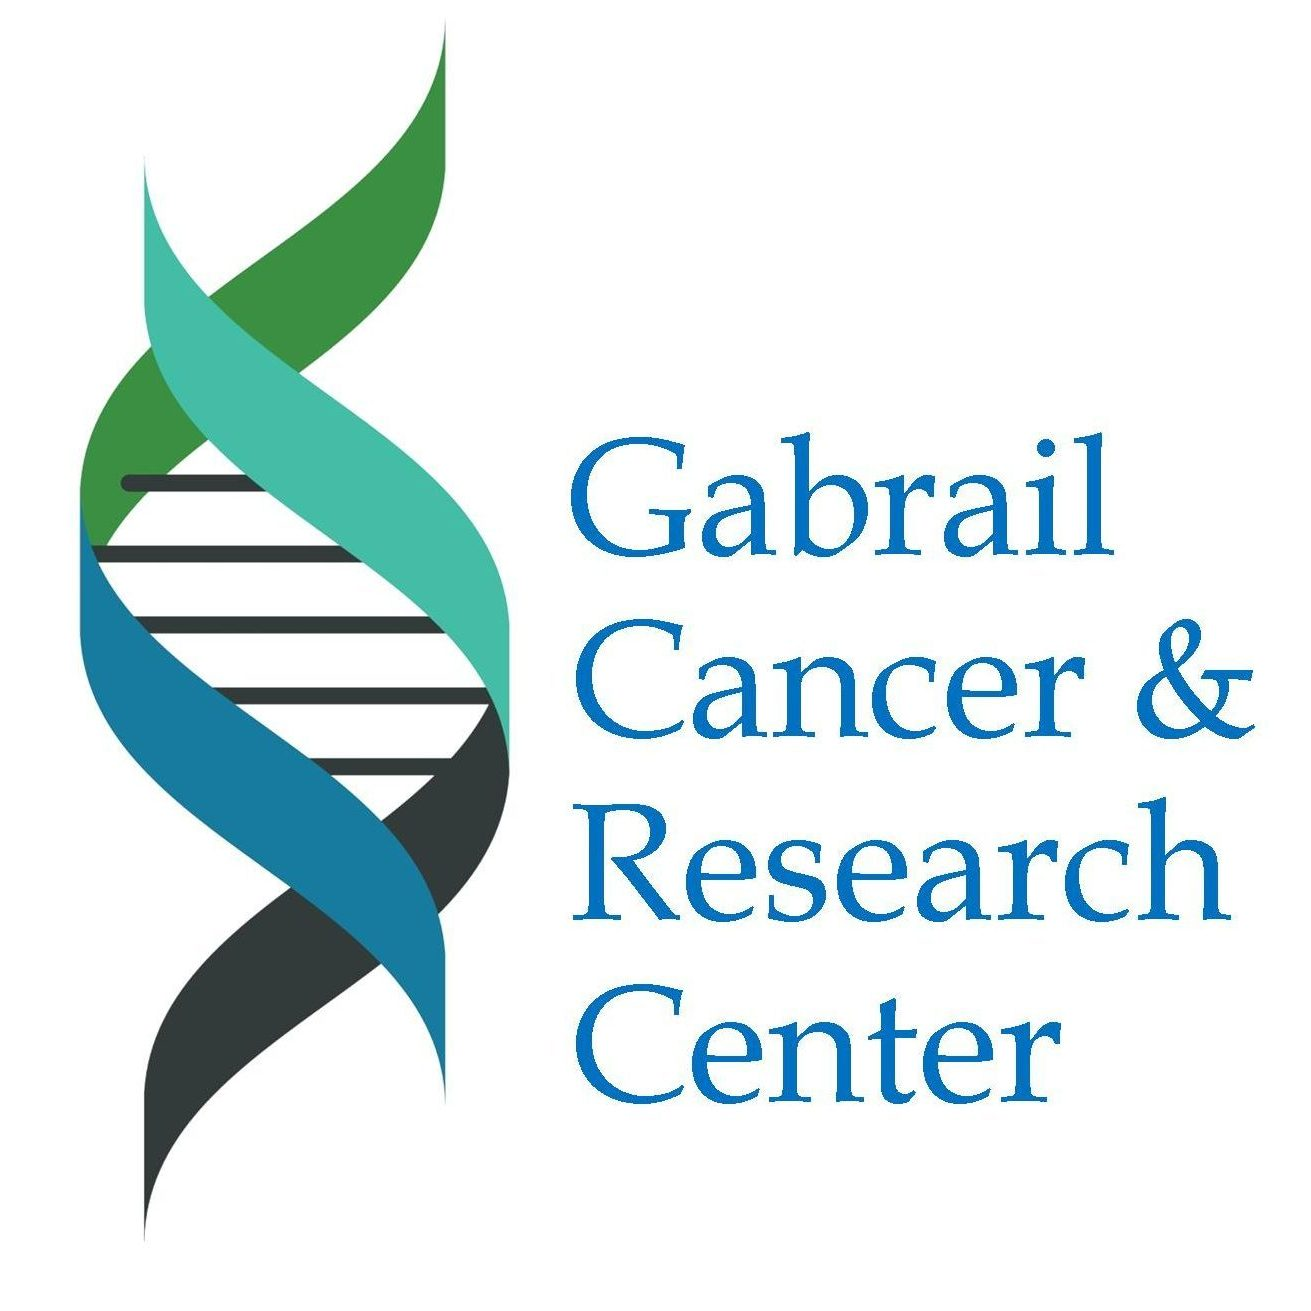 Gabrail Cancer & Research Center